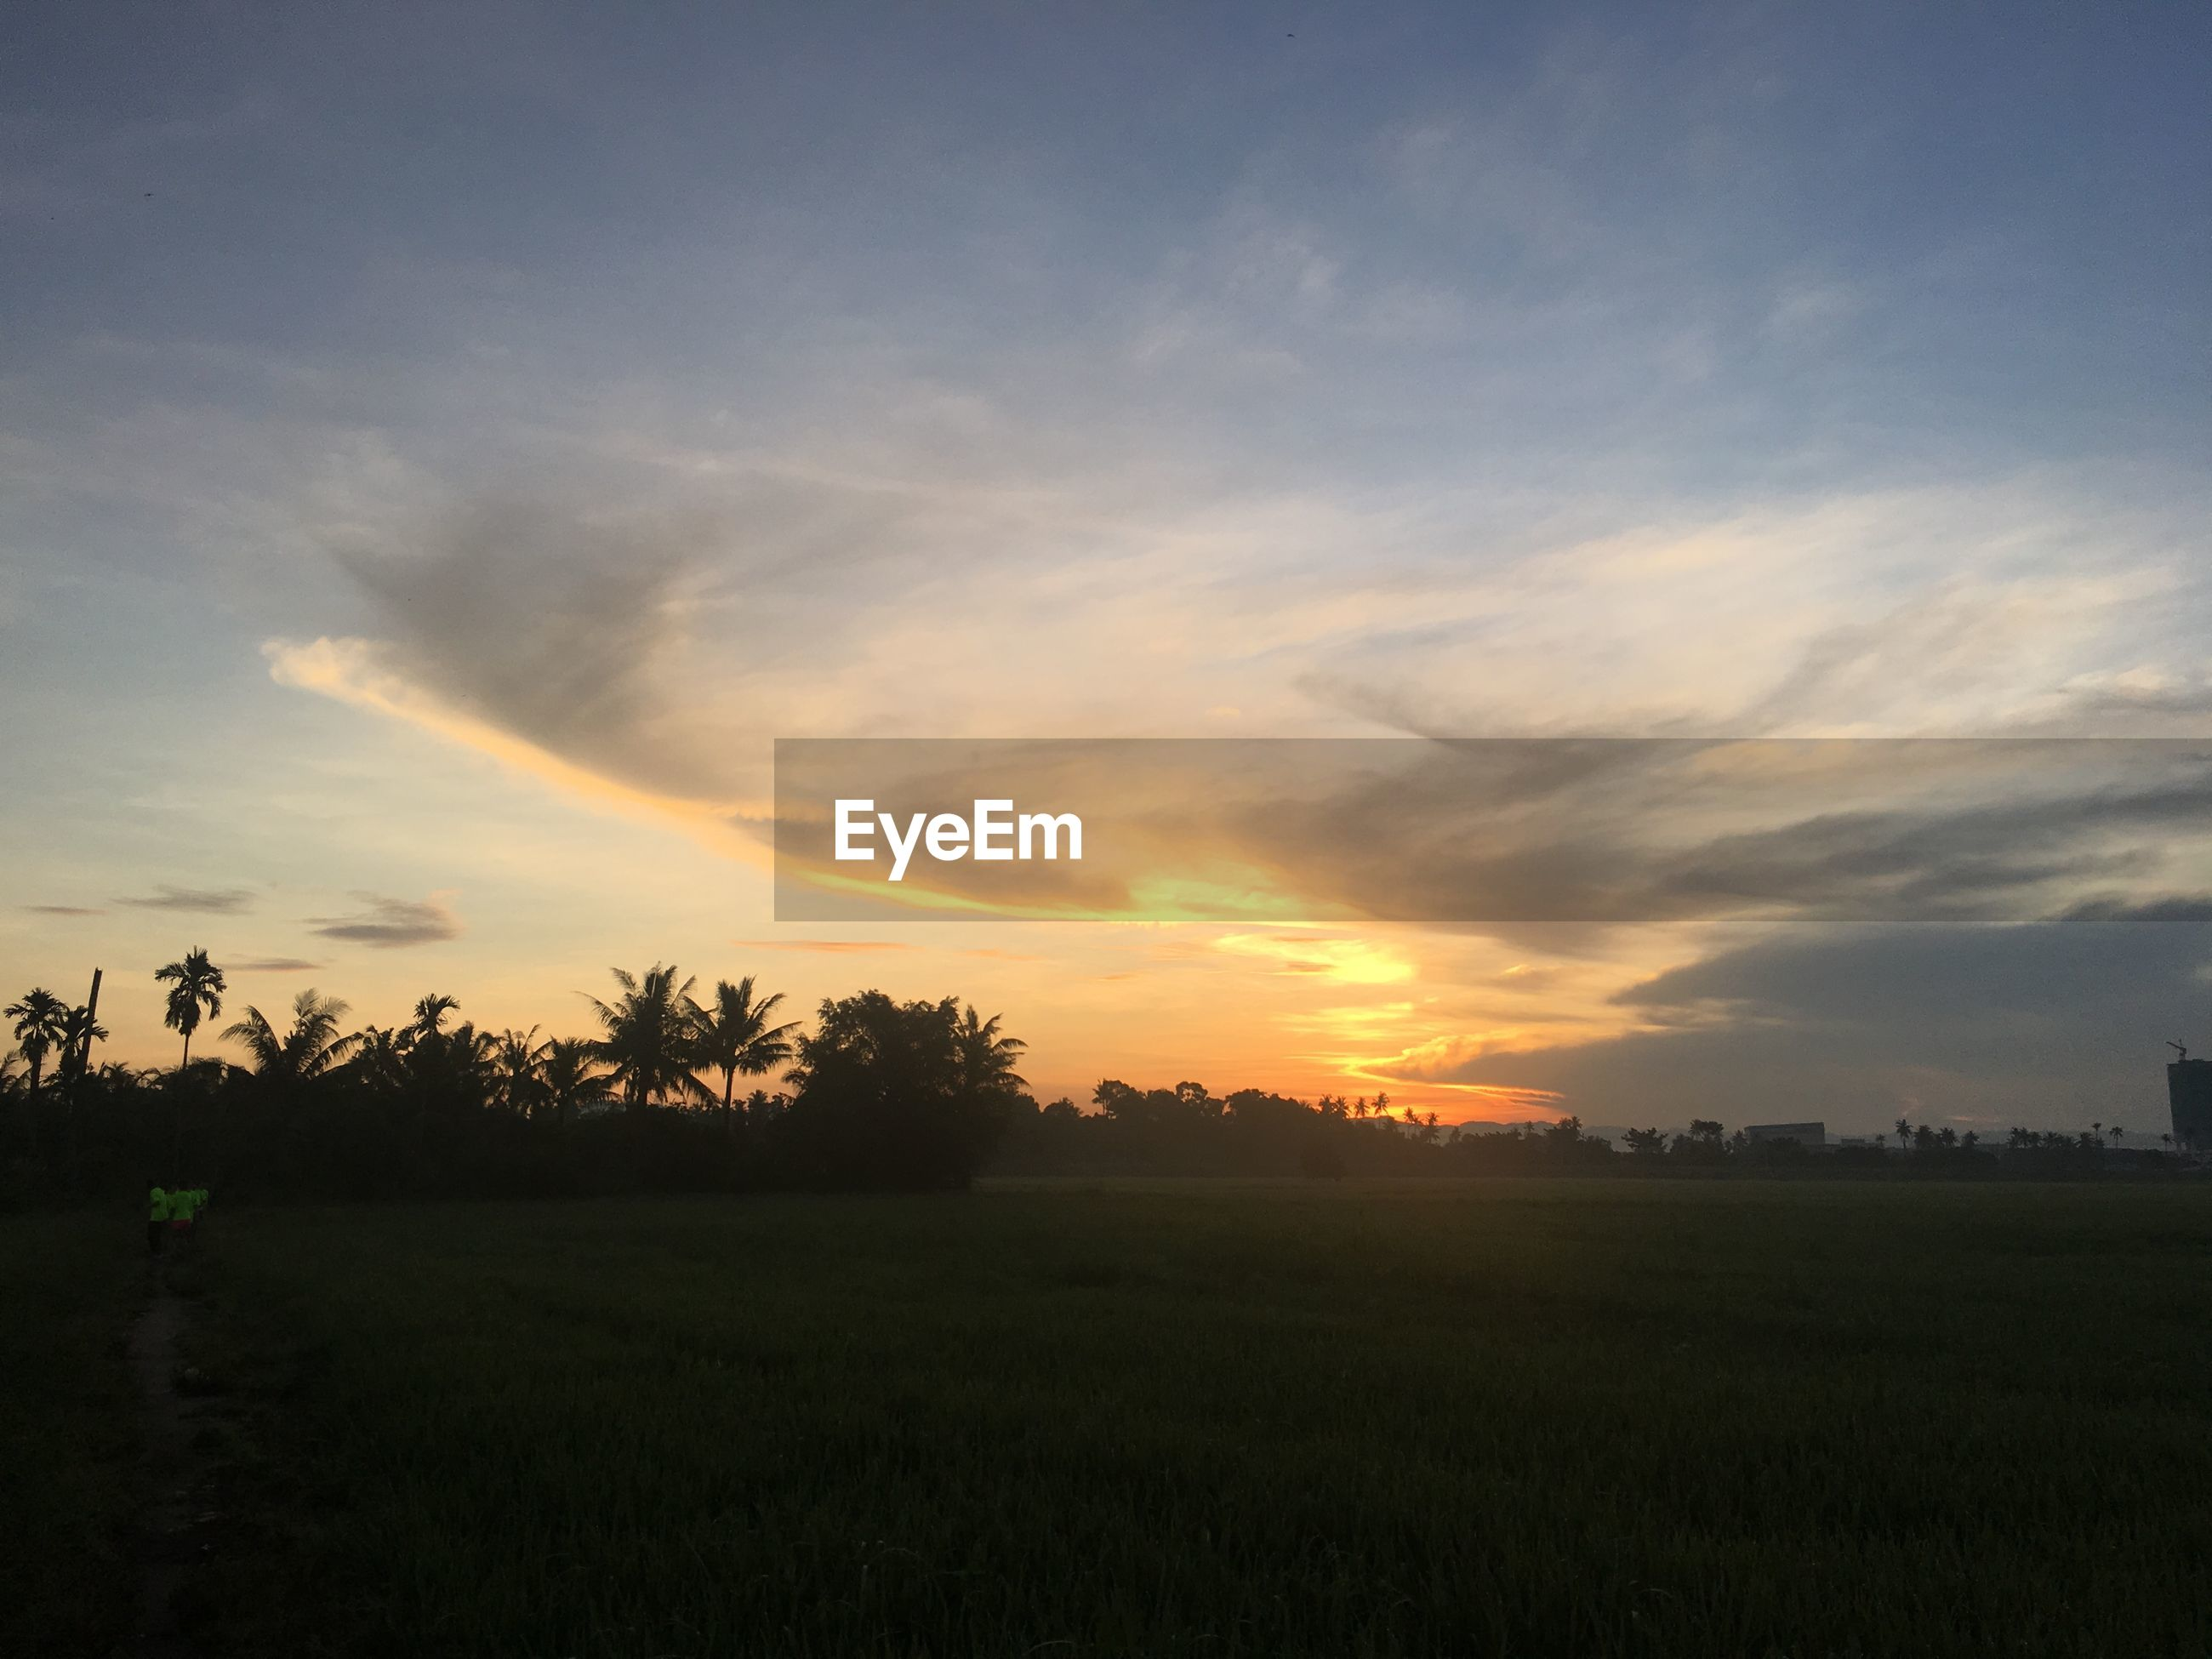 SCENIC VIEW OF LANDSCAPE AGAINST SUNSET SKY